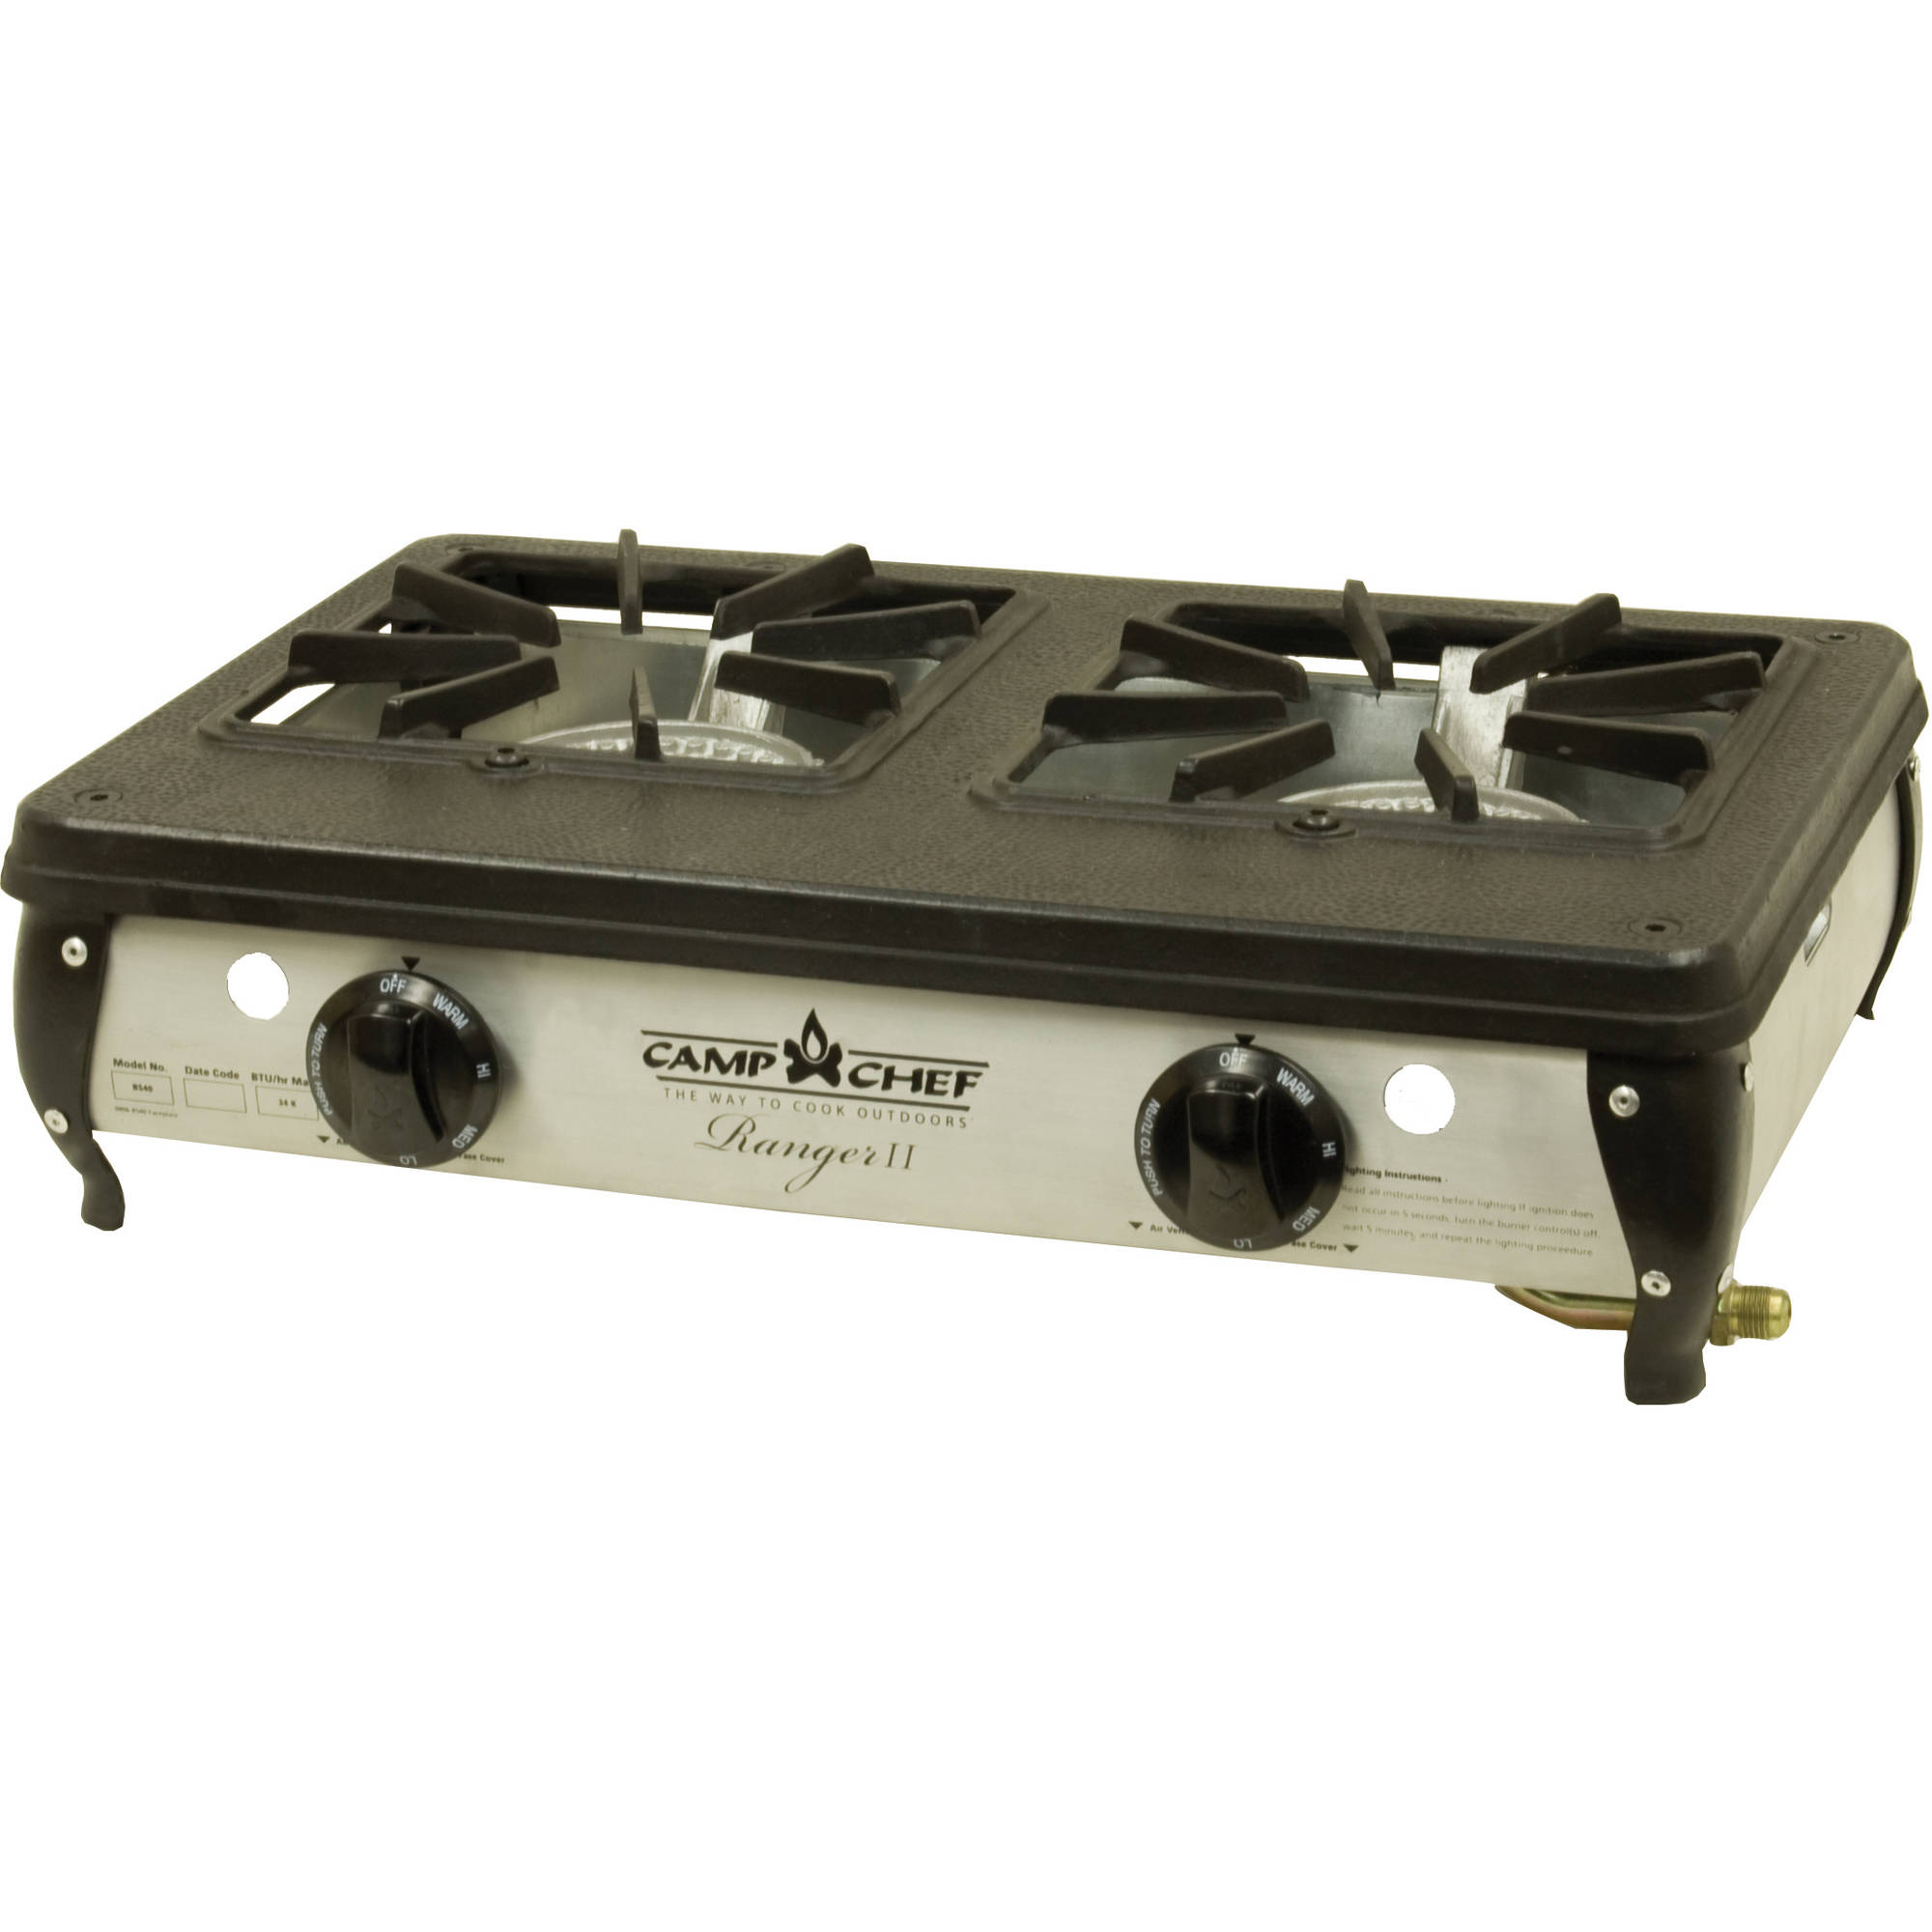 3 Burner Camp Stoves: Coleman Eventemp 3-Burner Propane Camp Stove